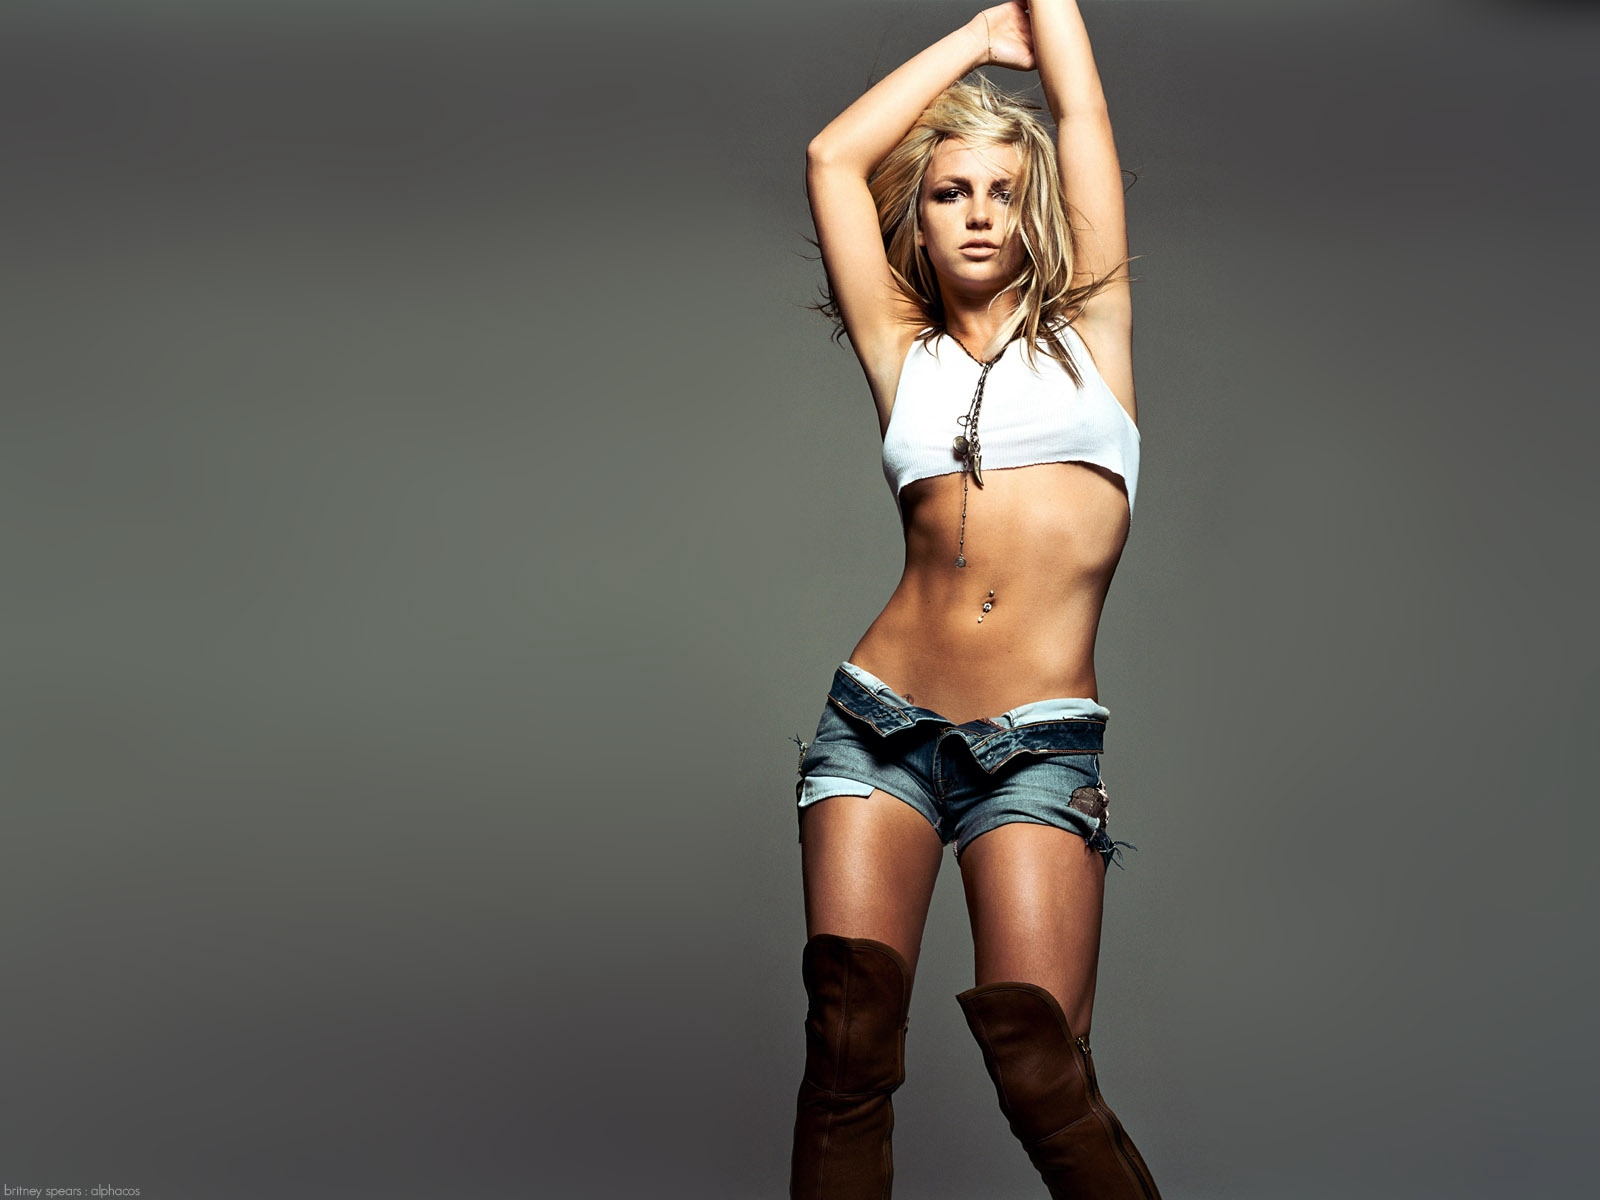 Britney spears screensaver v1.0